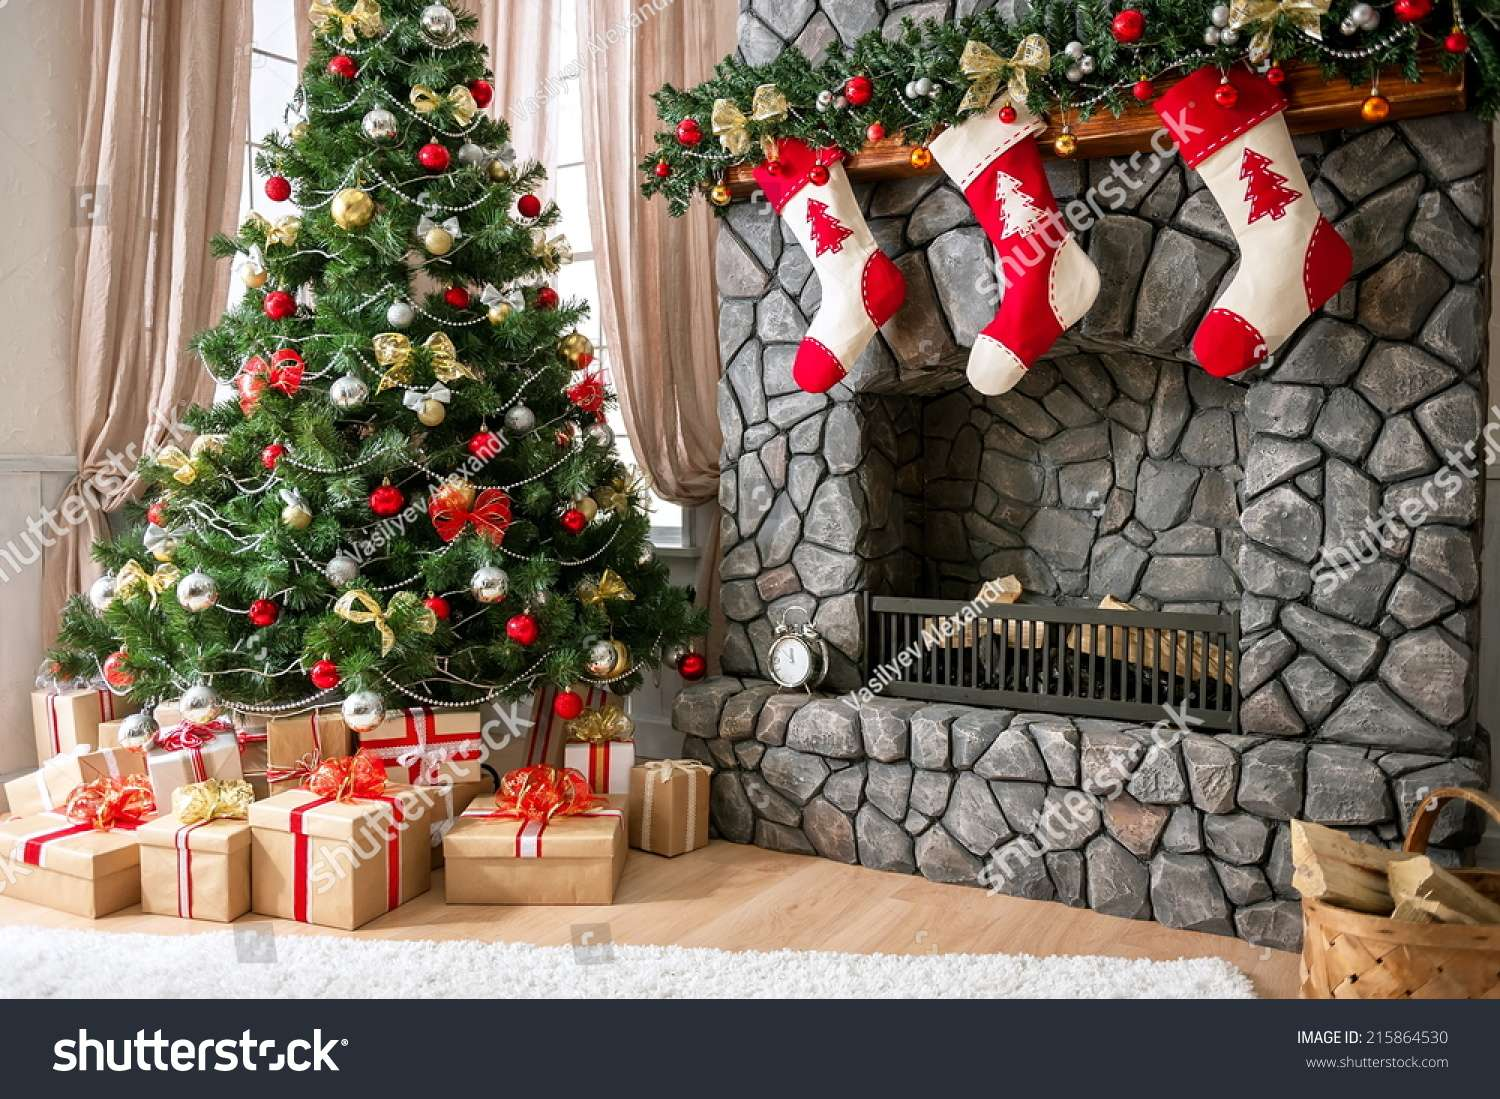 Christmas Interior Natural Light Tree Fireplace